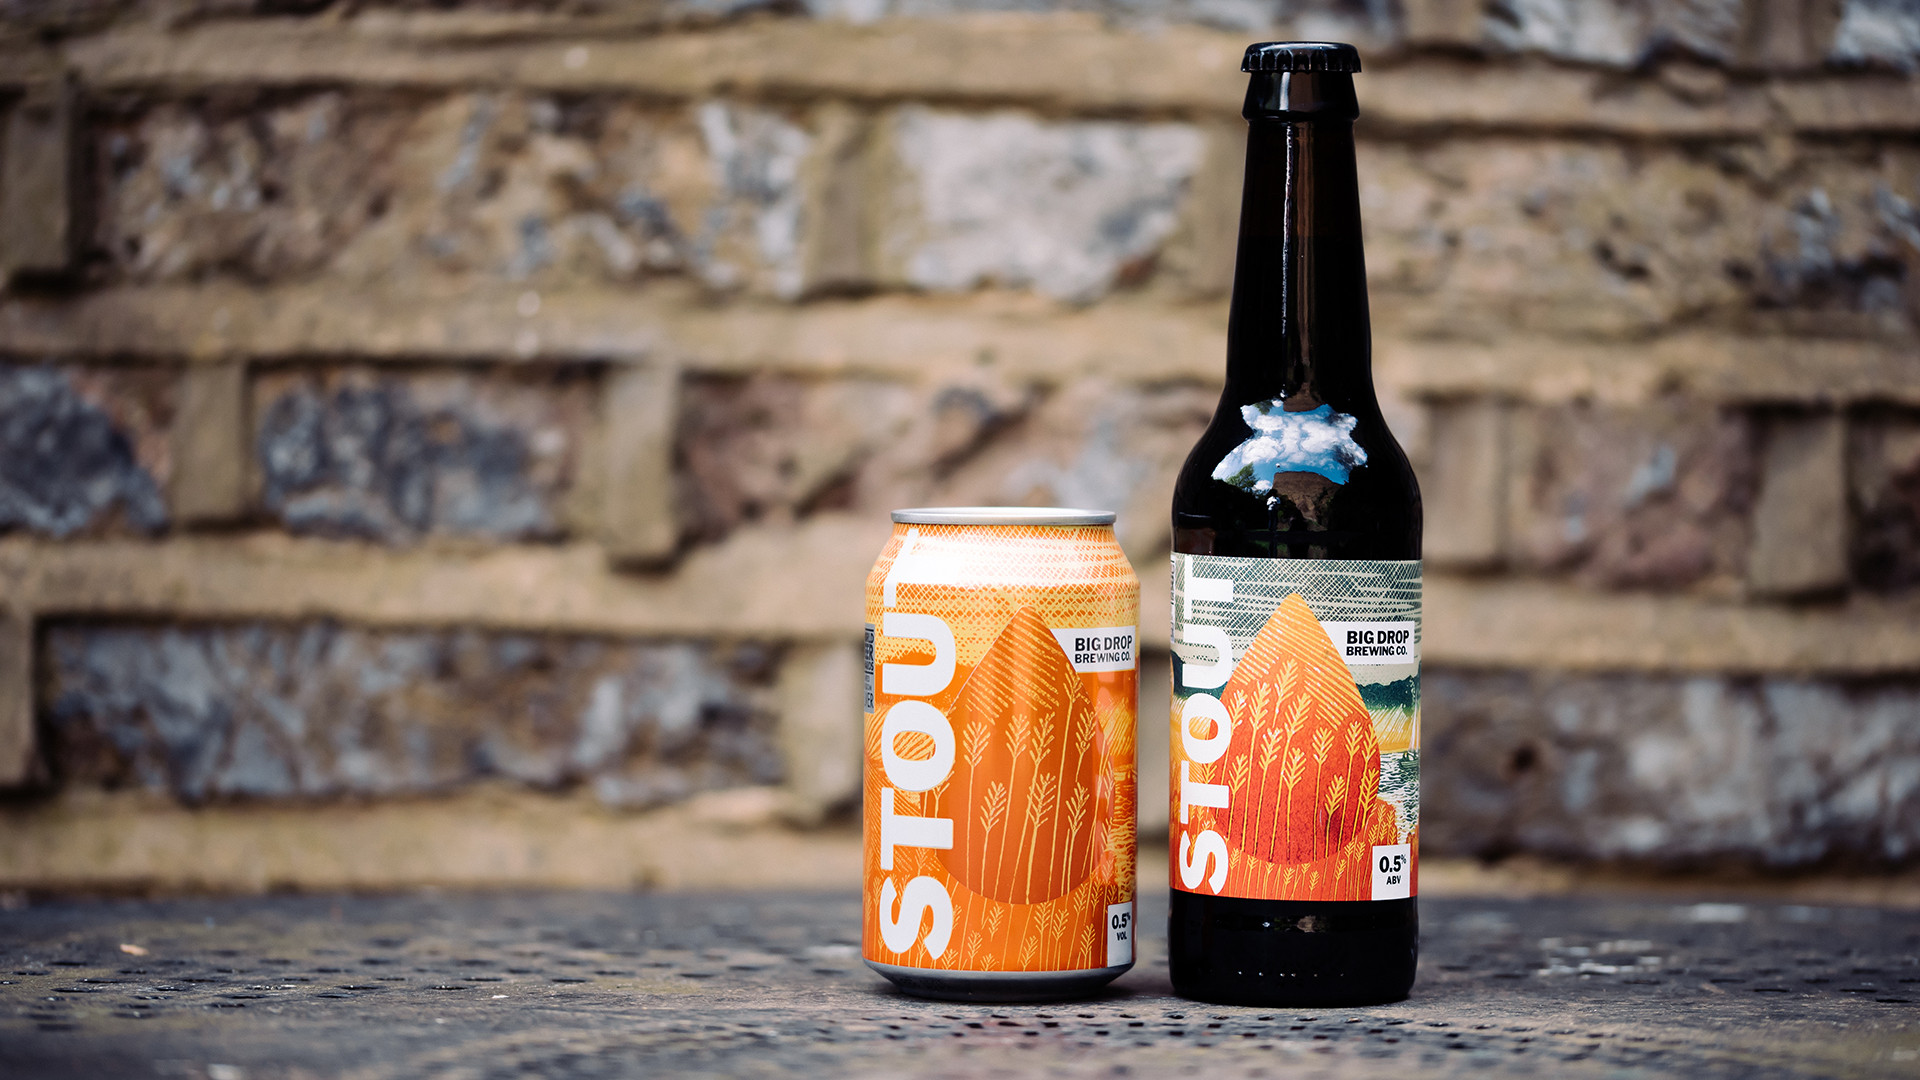 Non Alcoholic Beers London – Big Drop Brewing Co.'s Stout – 0.5%